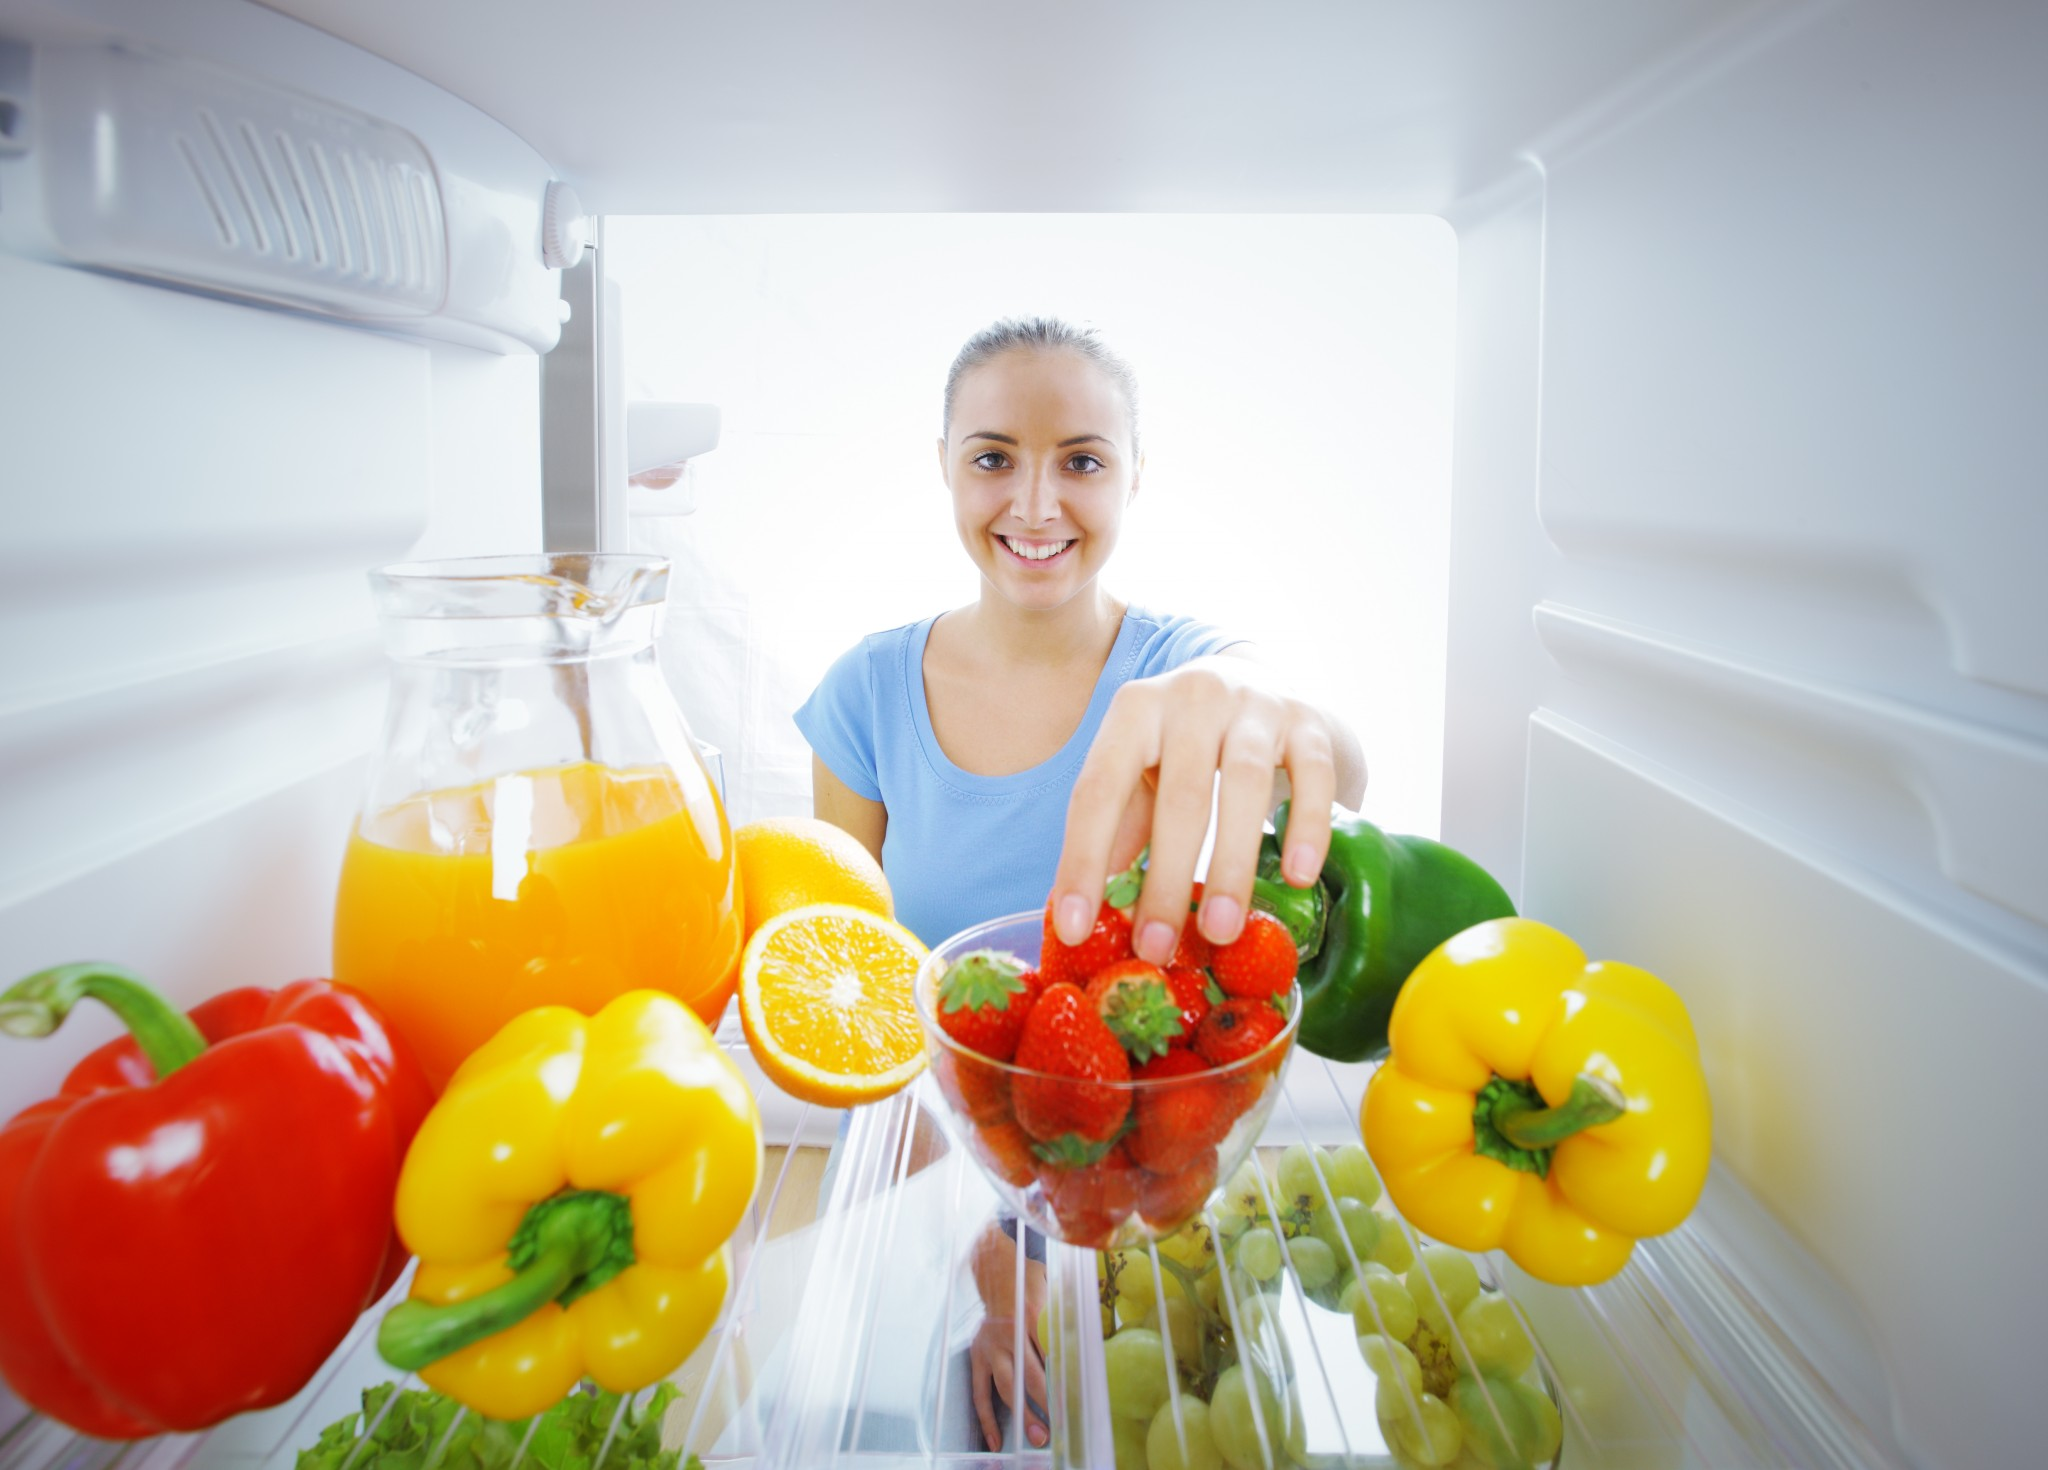 Everyday Economics: The Contents of Refrigerators, Supply and Demand, and Global Markets